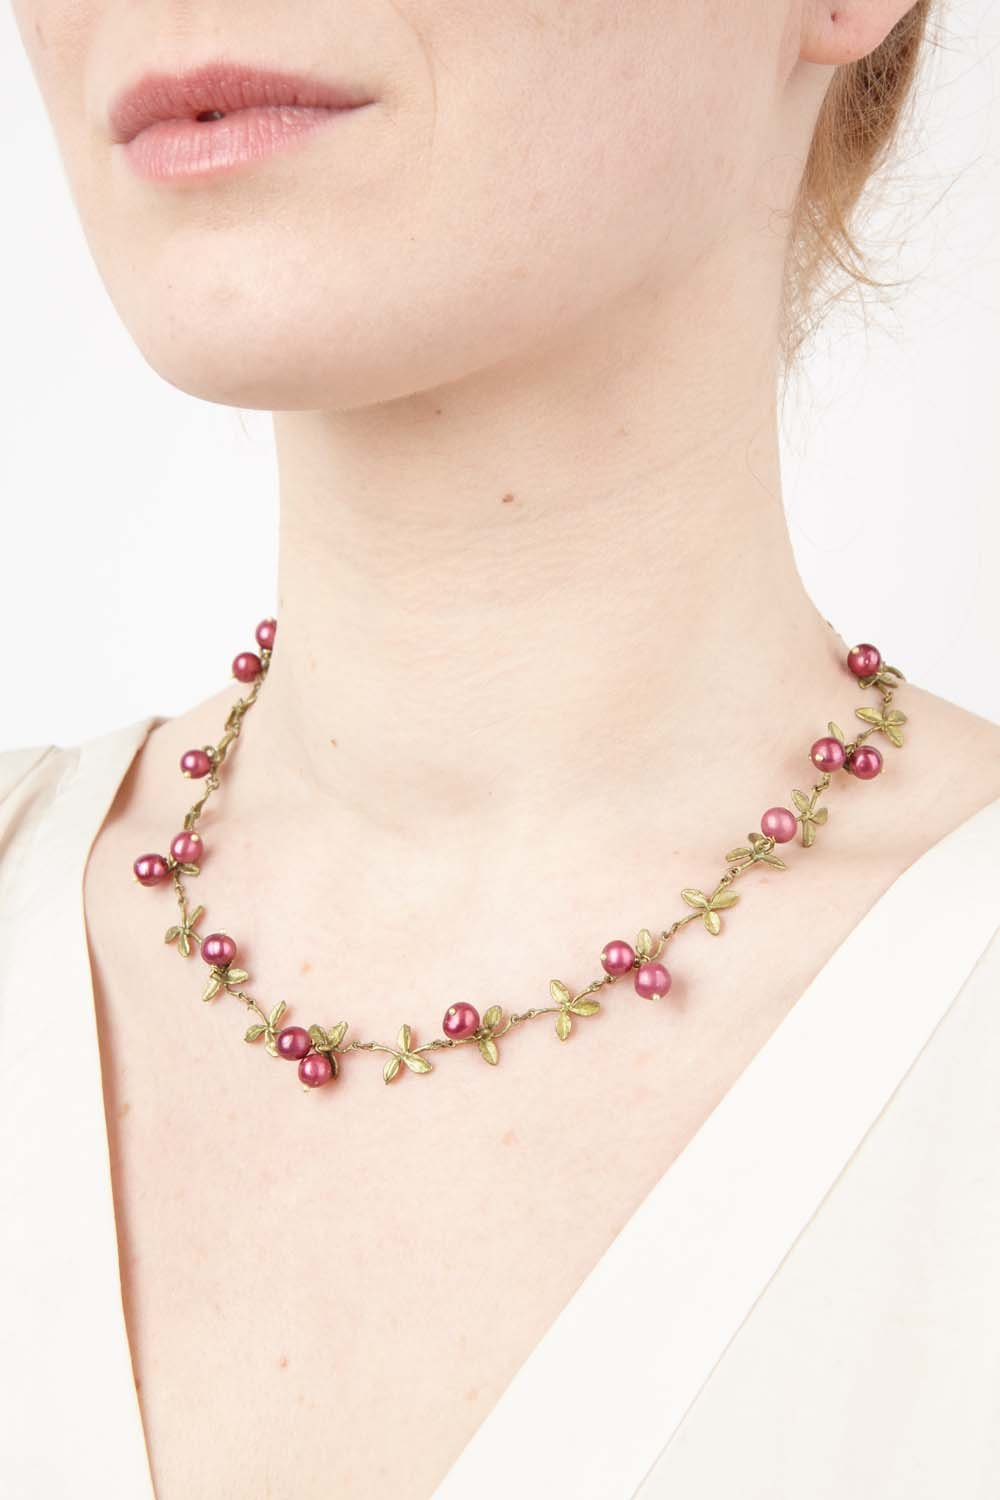 Cranberry Necklace - Delicate